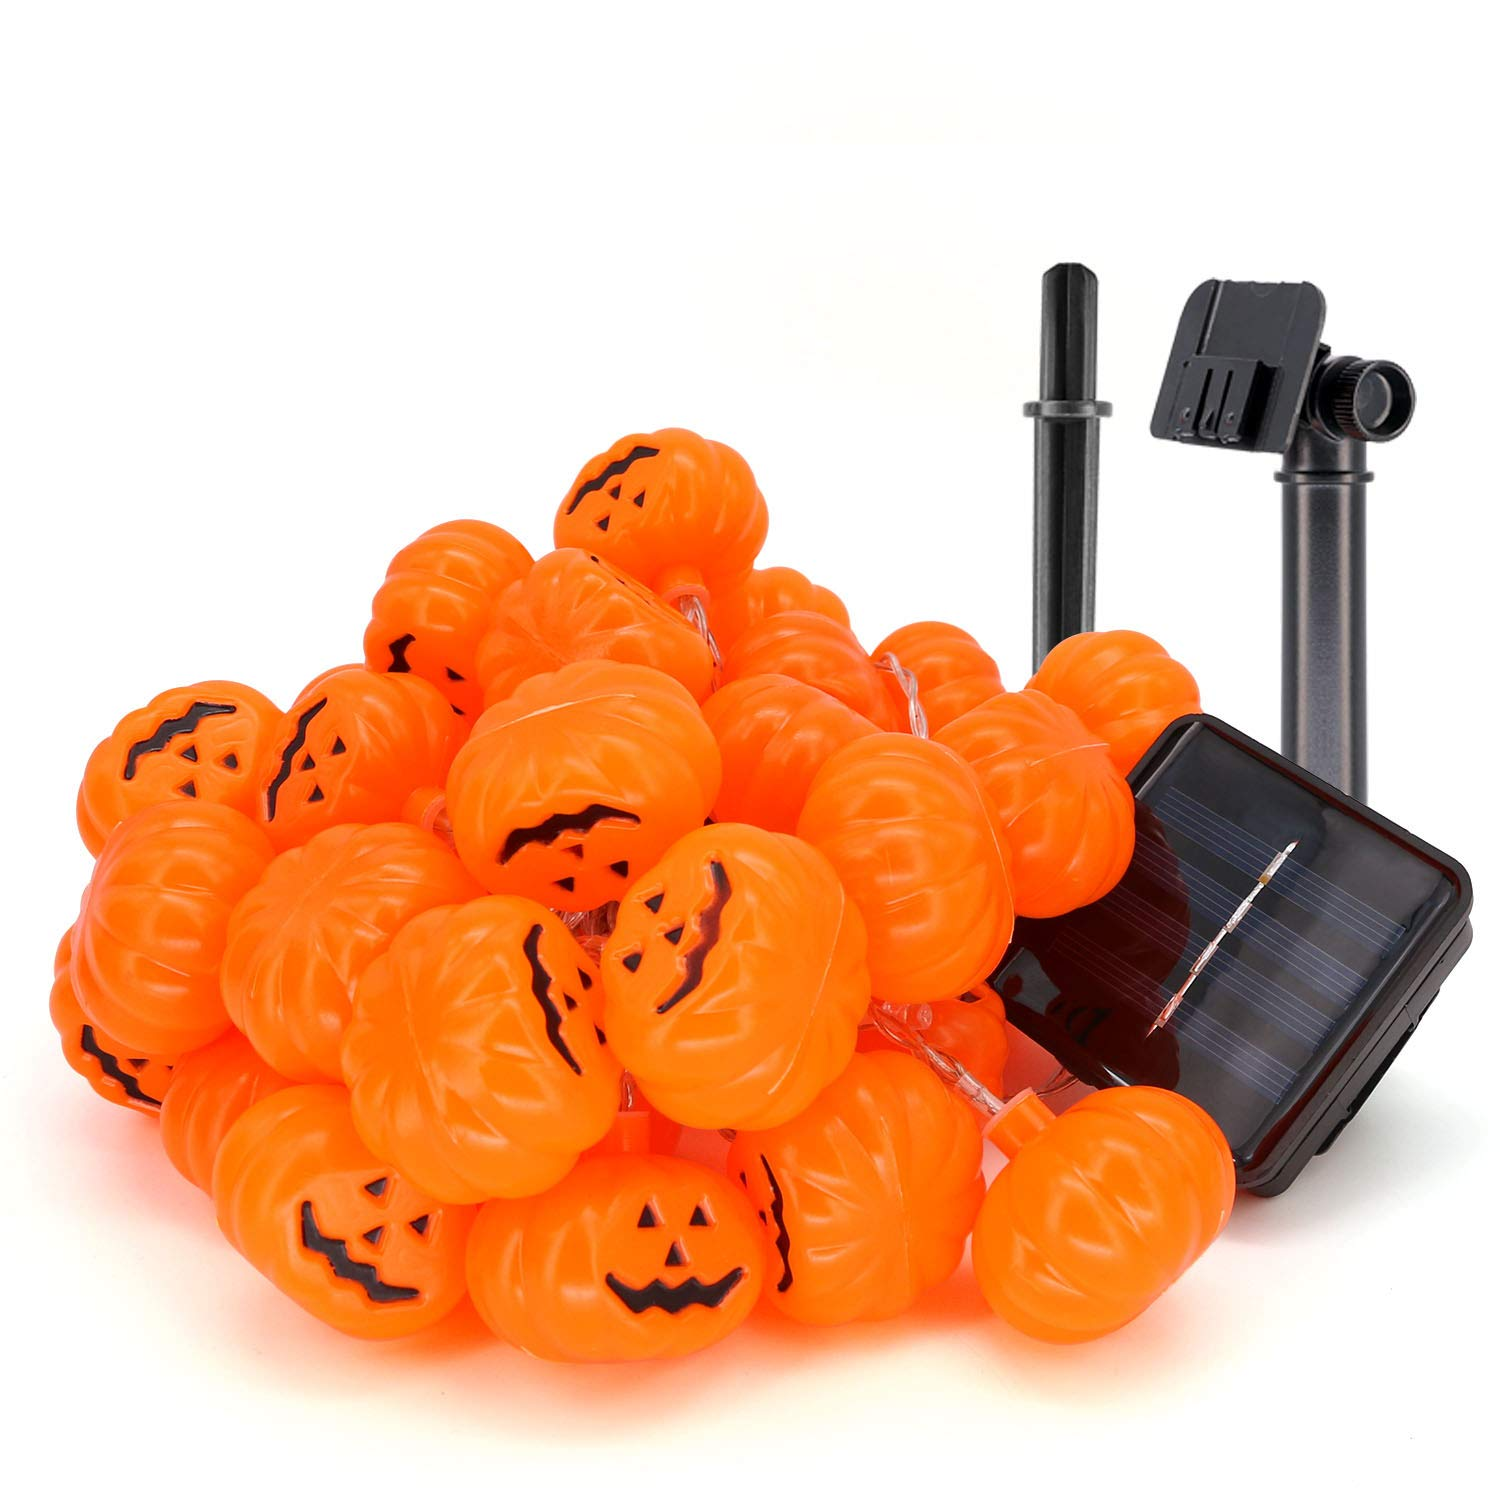 LED Halloween Solar Powered String Lights 3D Jack O Lantern Pumpkin Water Proof, No Battery Needed, Indoor Outdoor Use 17 Feet 40 Pumpkins for Party Trick or Treat Haunted House Decoration - Orange